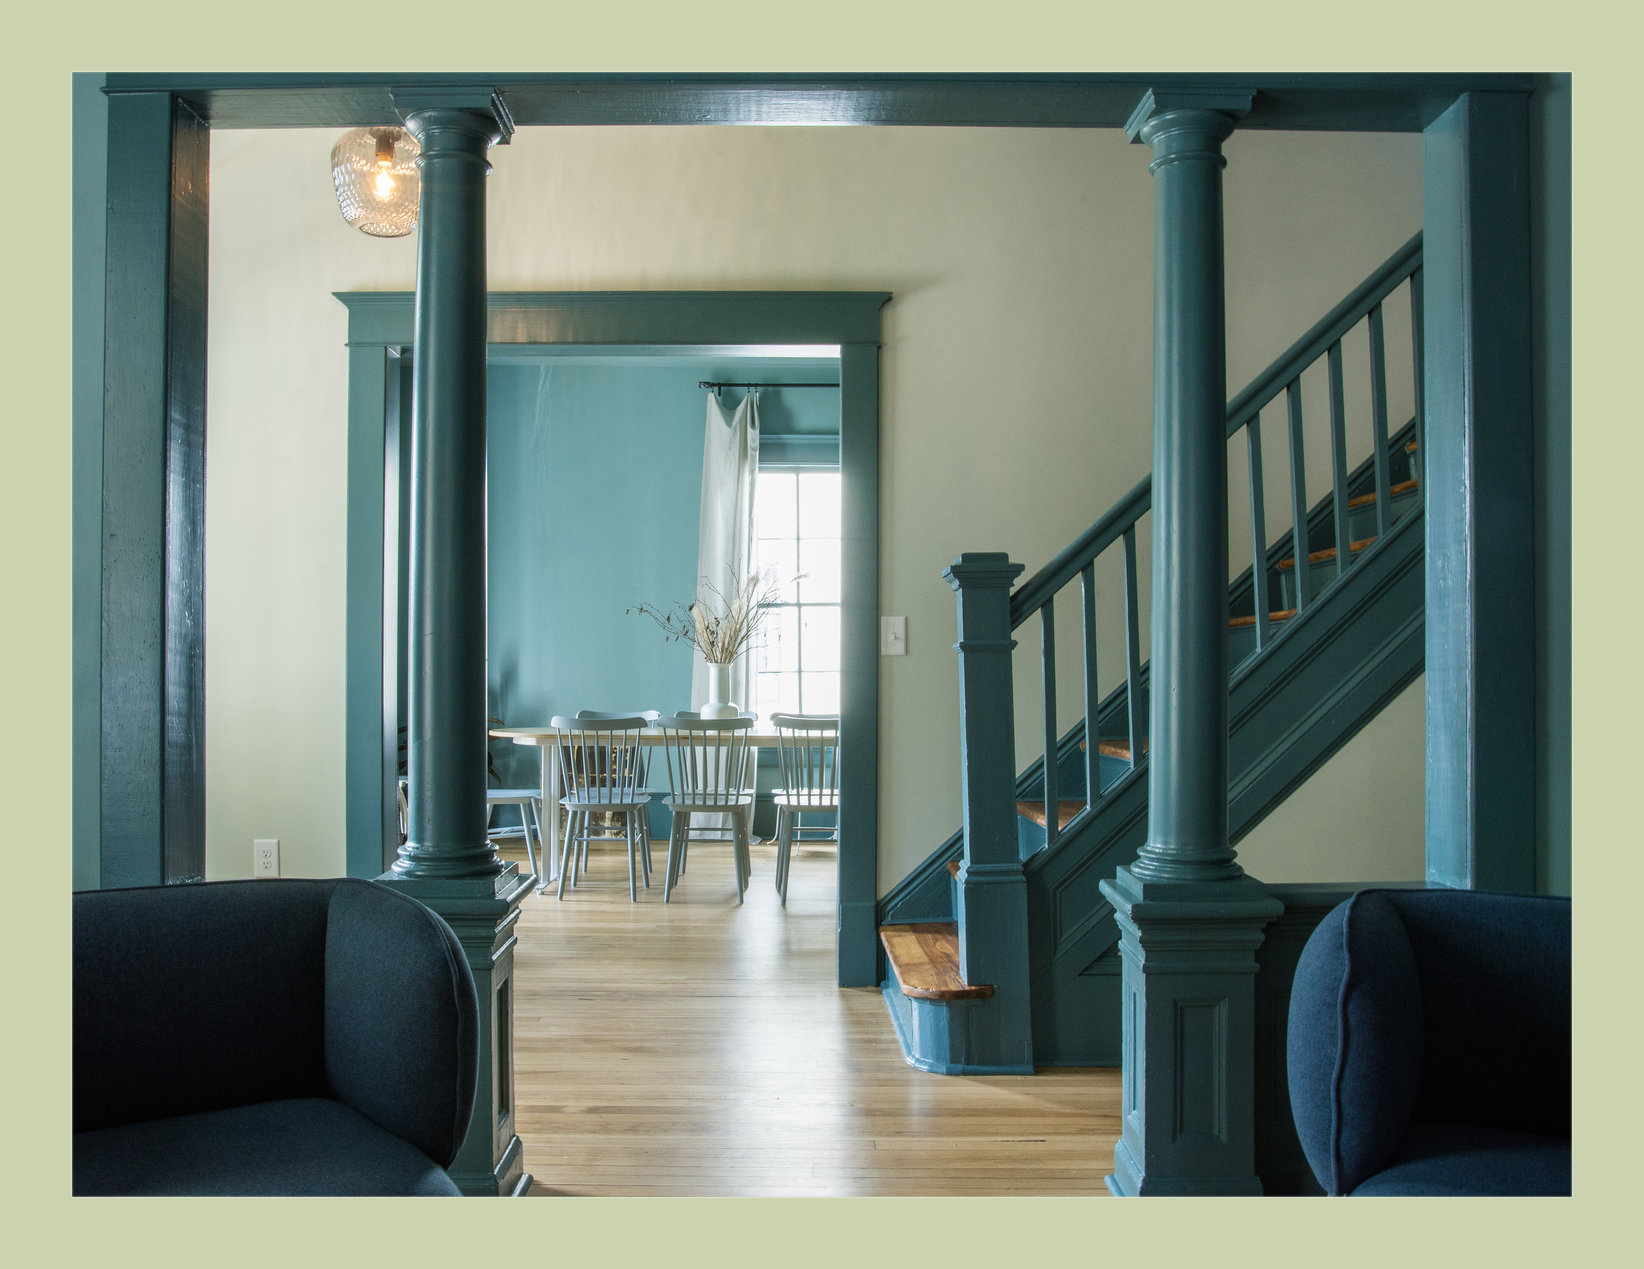 Common spaces in the historic house.